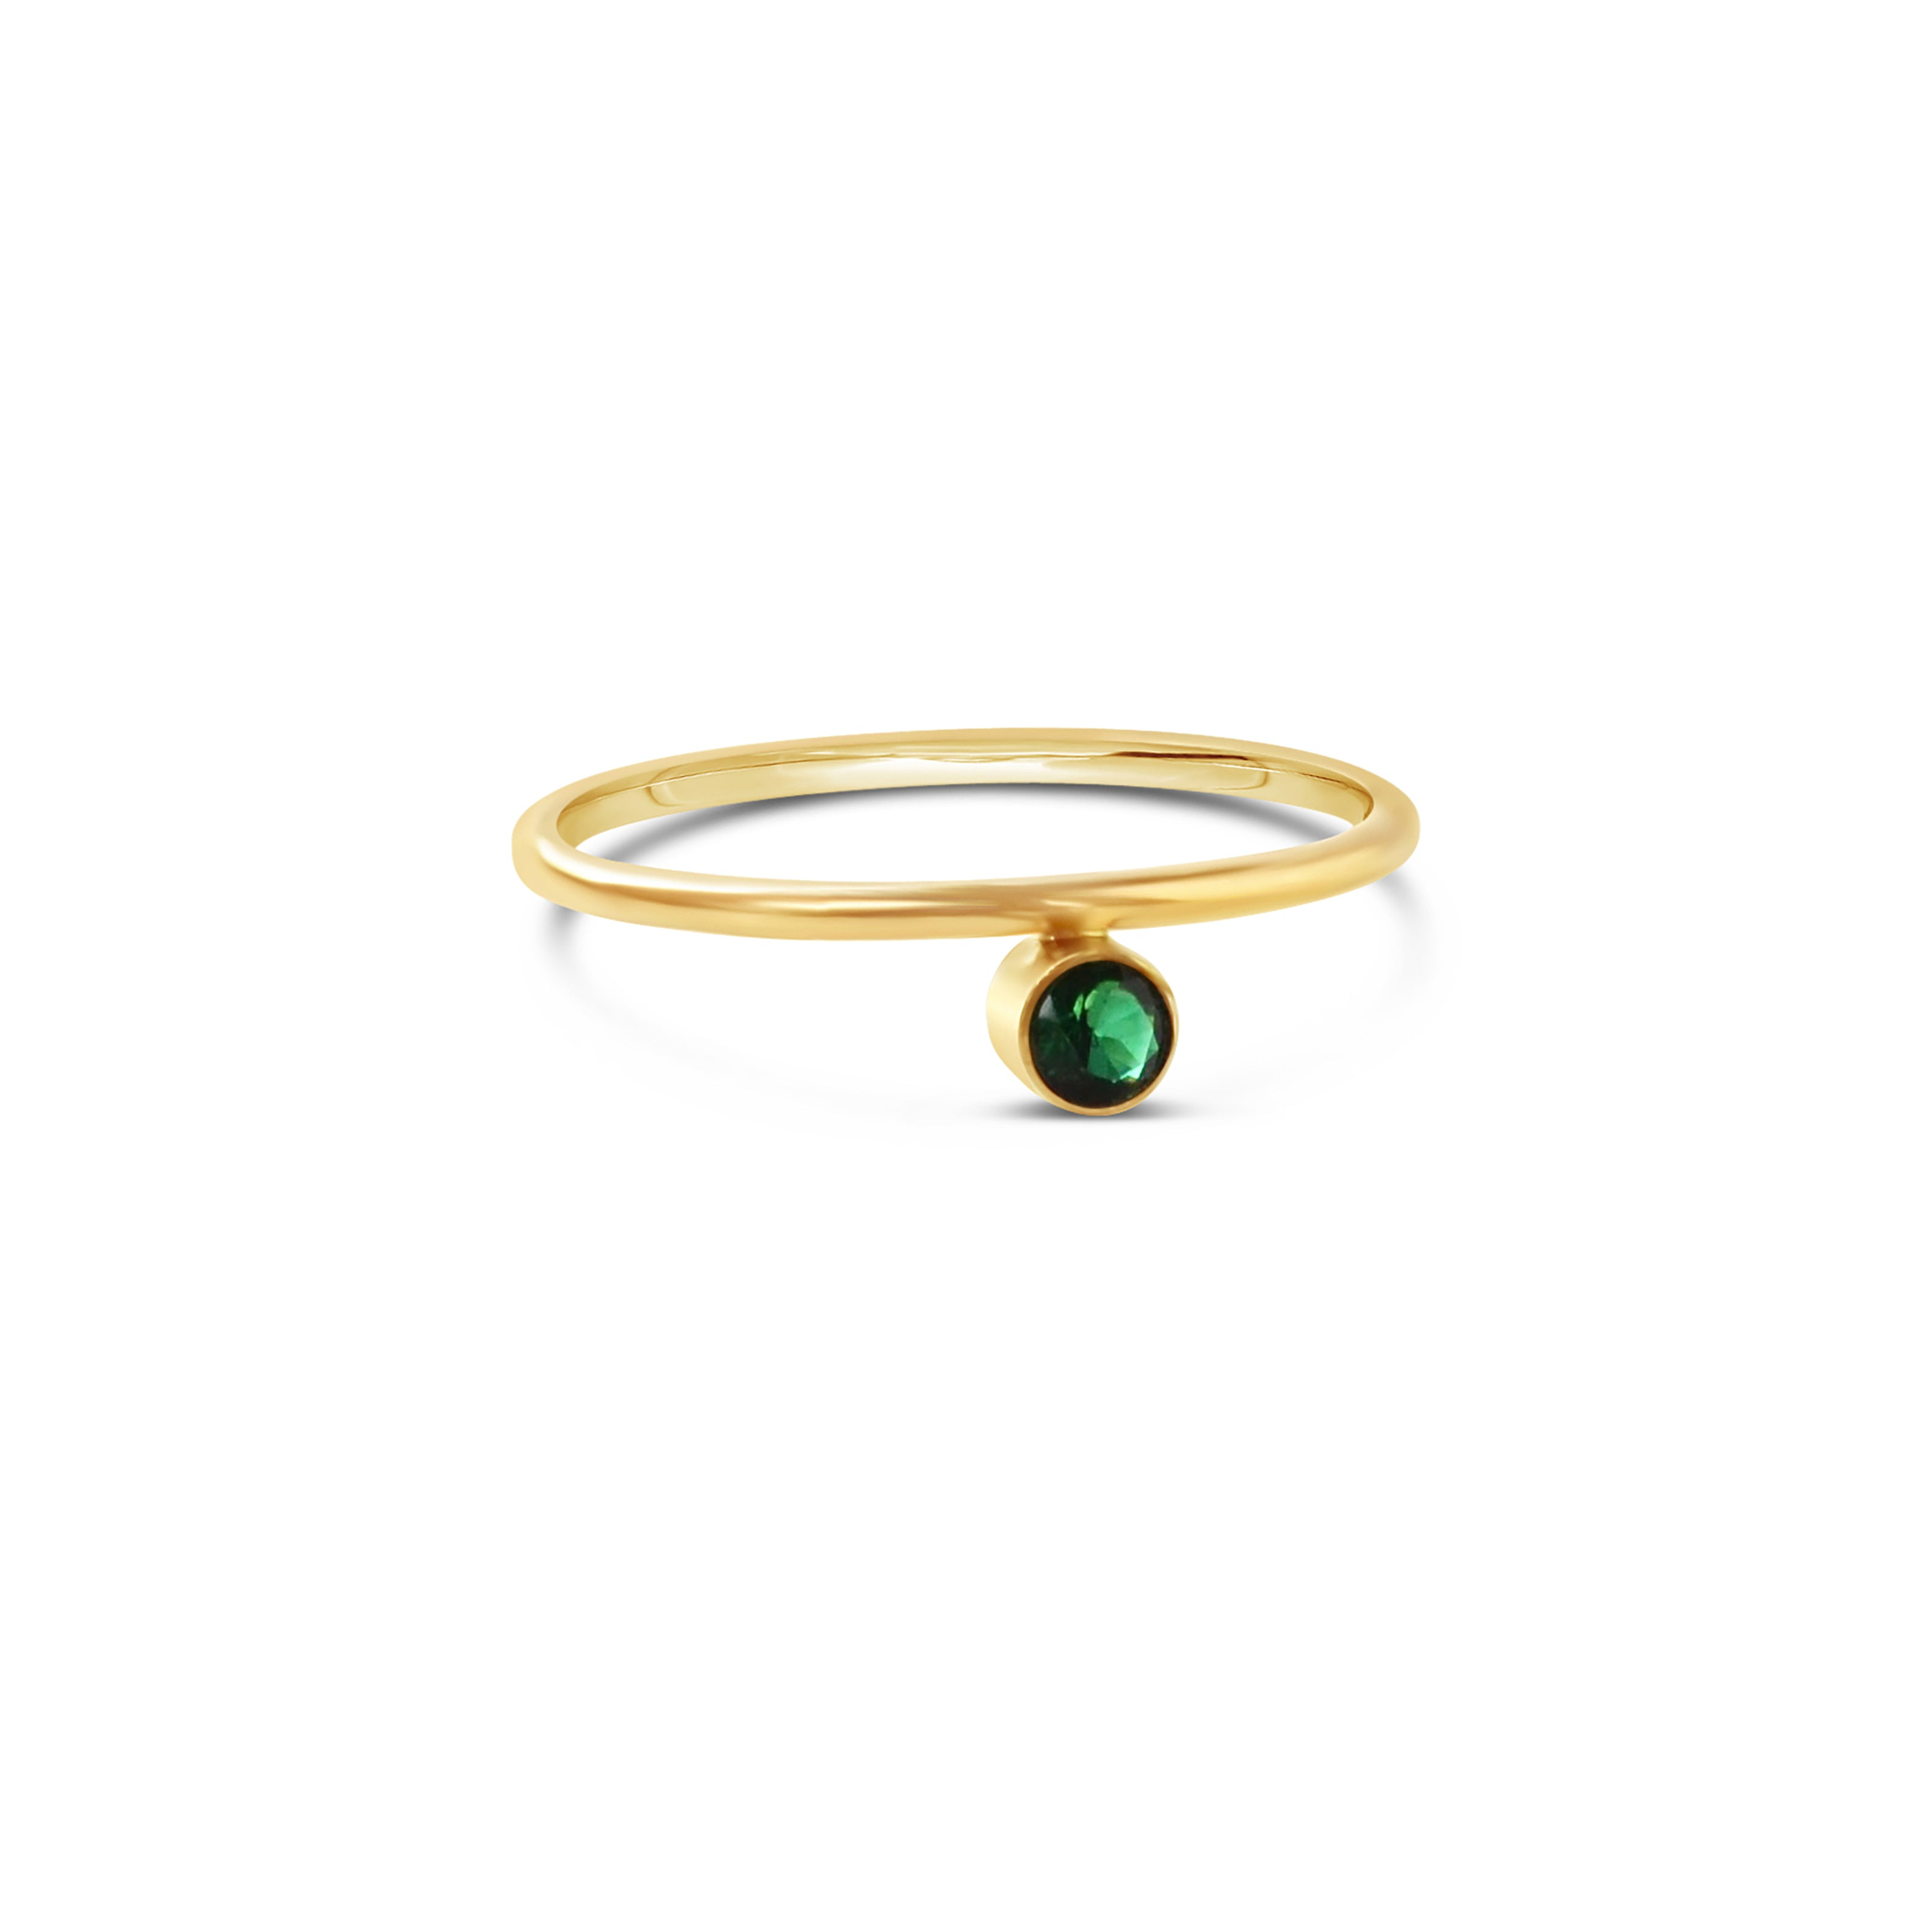 Offset Gemstone Stacking Ring